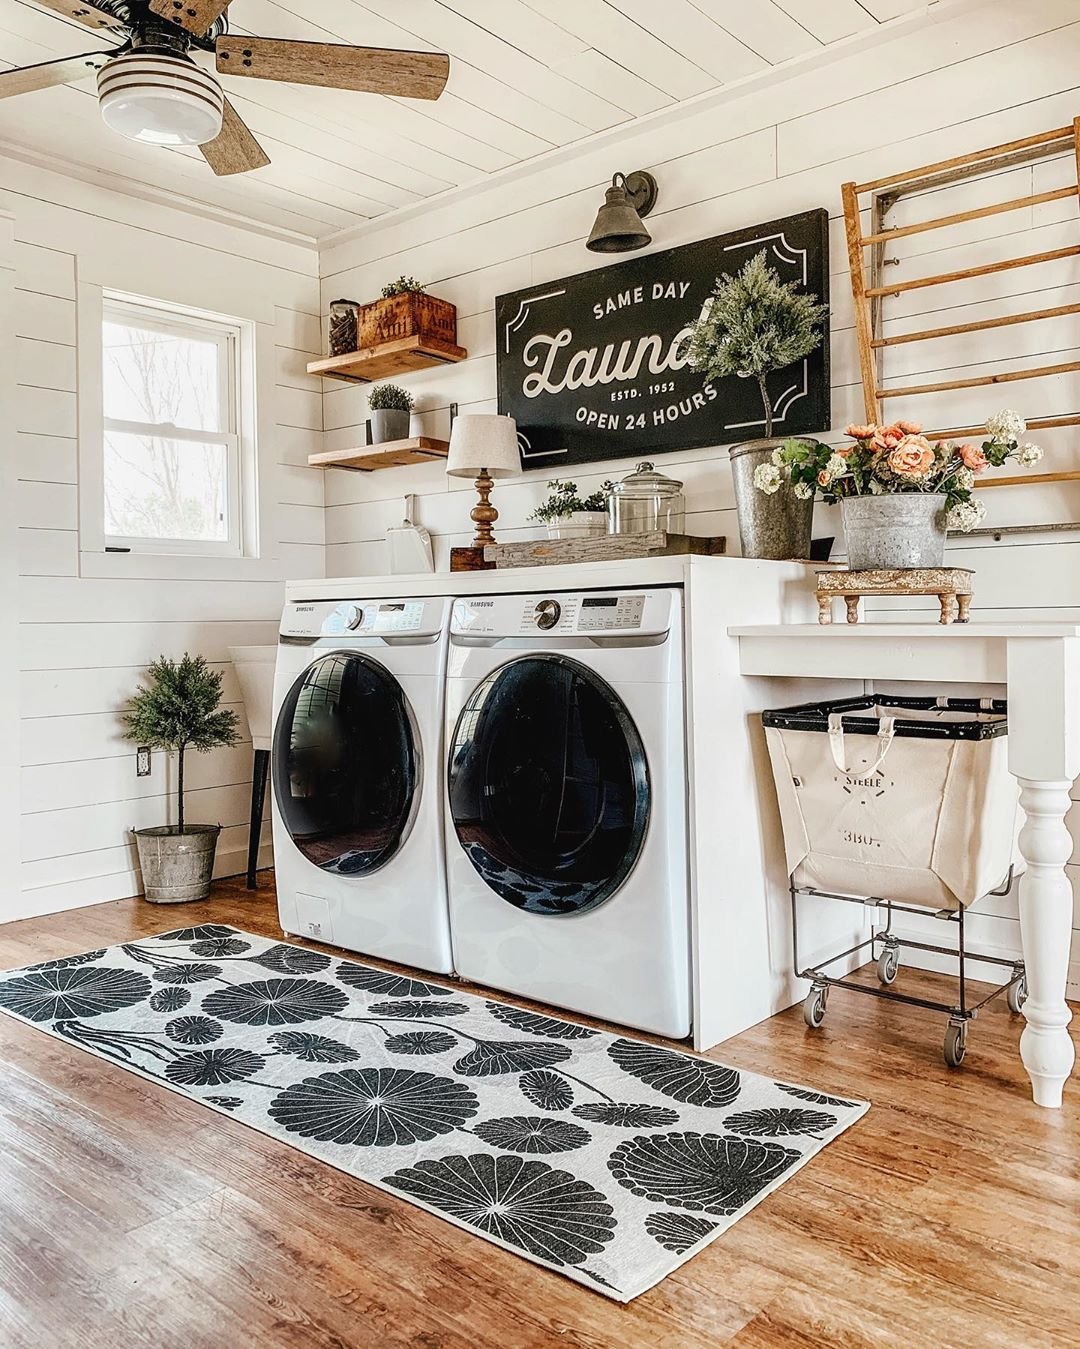 BEAUTIFUL farmhouse laundry room decor by @our_forever_farmhouse. You can try other @ruggable rugs like this one in your own home with the DecorMatters app, link in bio! Click the image to try our free home design app.  (Keywords: laundry room ideas, laundry room decor, small room decor, laundry room organization, laundry room colors, laundry room shelf, small laundry room ideas dream home, home decor ideas, diy home decor, laundry room makeover)